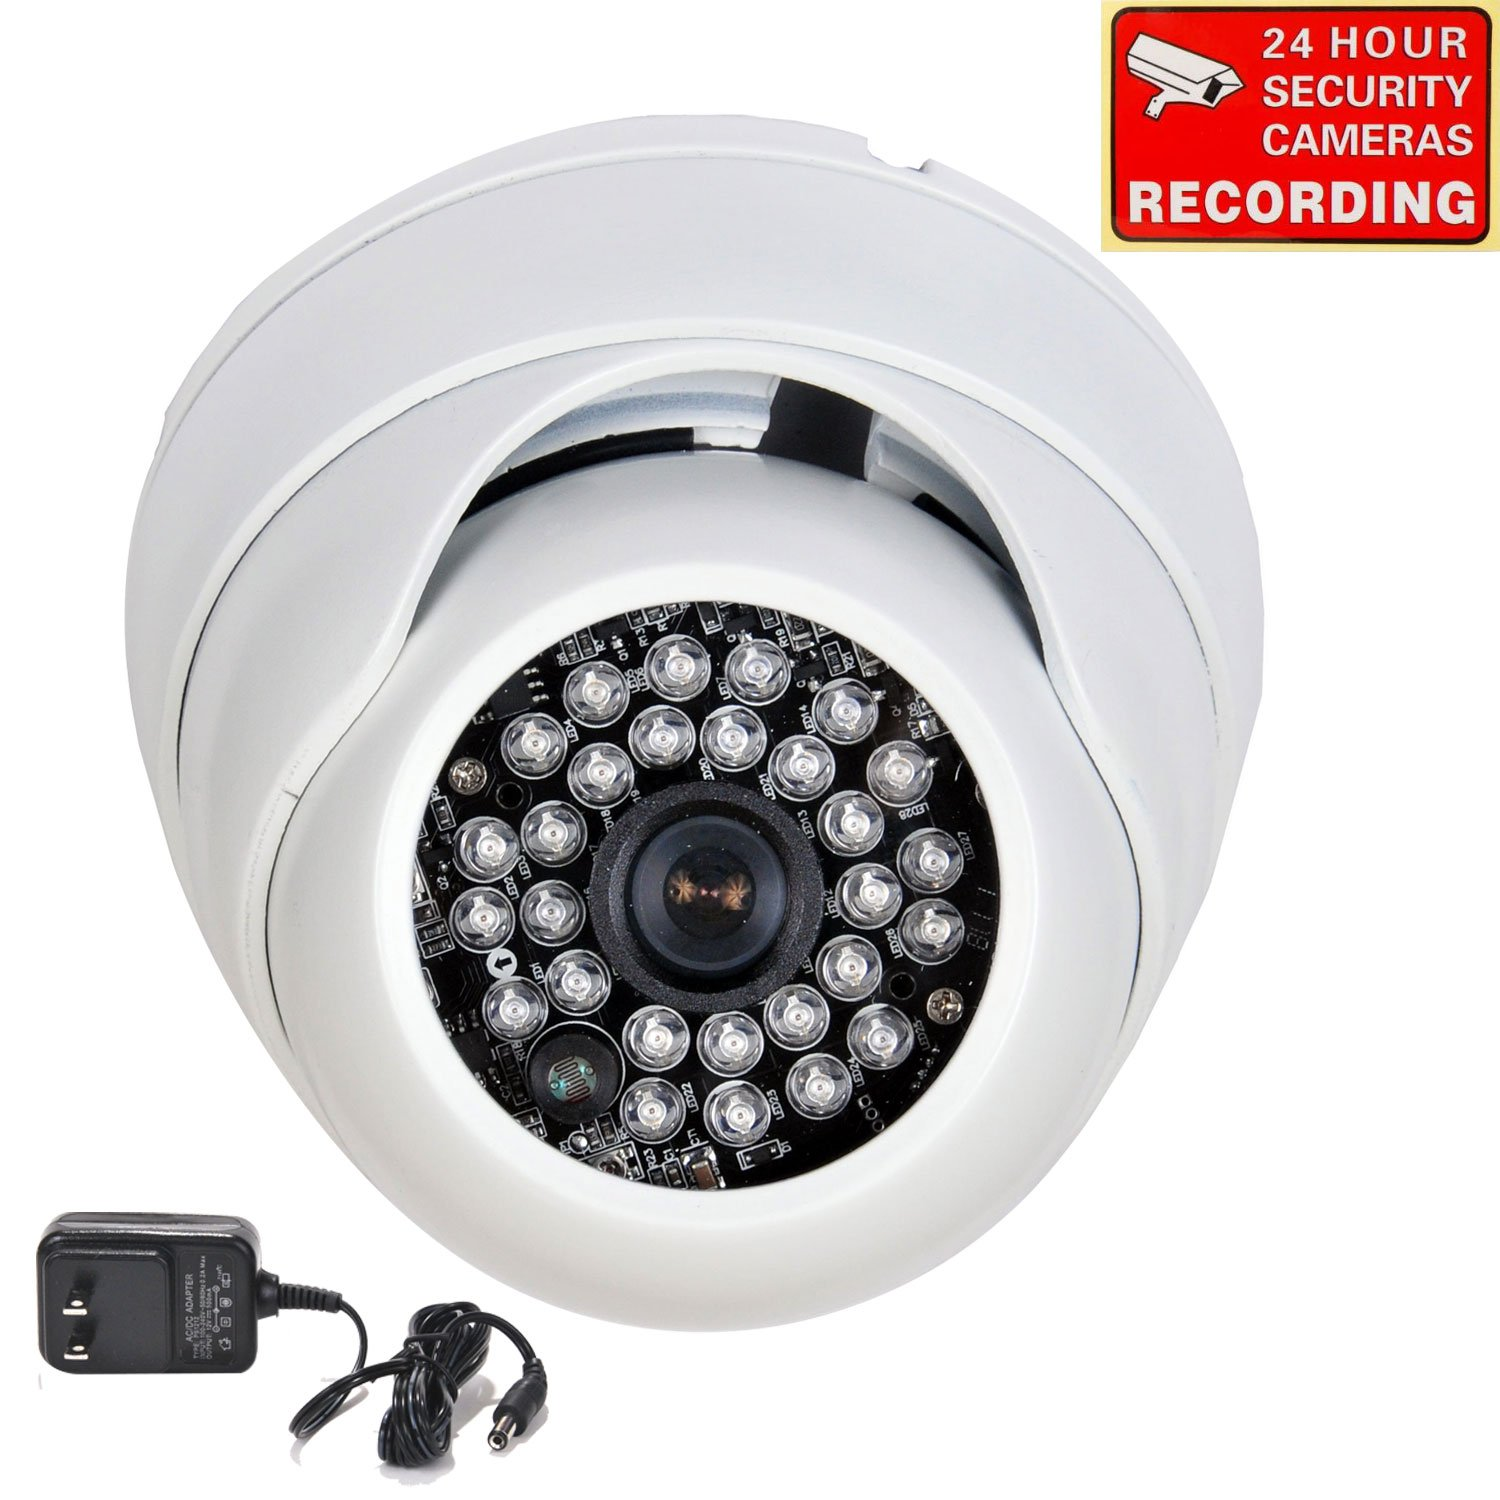 VideoSecu Dome Security Camera 700TVL Day Night Built-in 1/3'' Effio CCD Infrared 28 IR LEDs Vandal Proof 3.6mm Wide View Angle Lens for CCTV Home Video DVR System with Bonus Power Supply A74 by VideoSecu